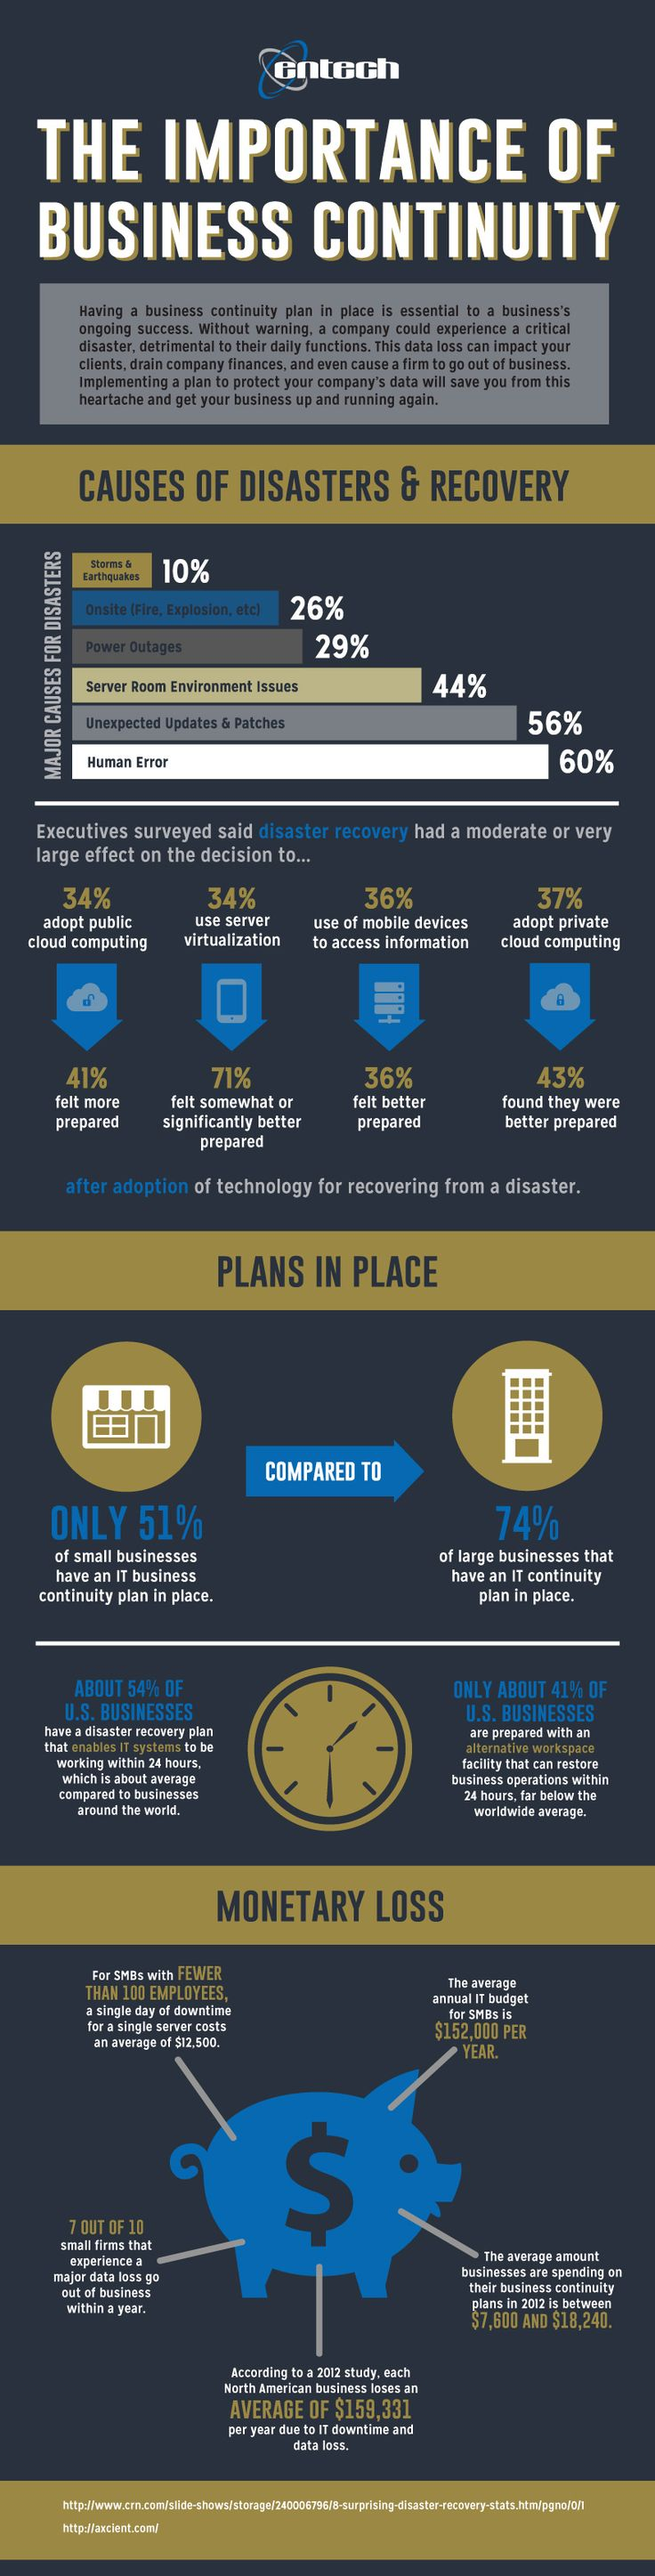 Thinking about a business continuity solution for your business? Check out this #infographic. #businesscontinuity #disasterrecovery